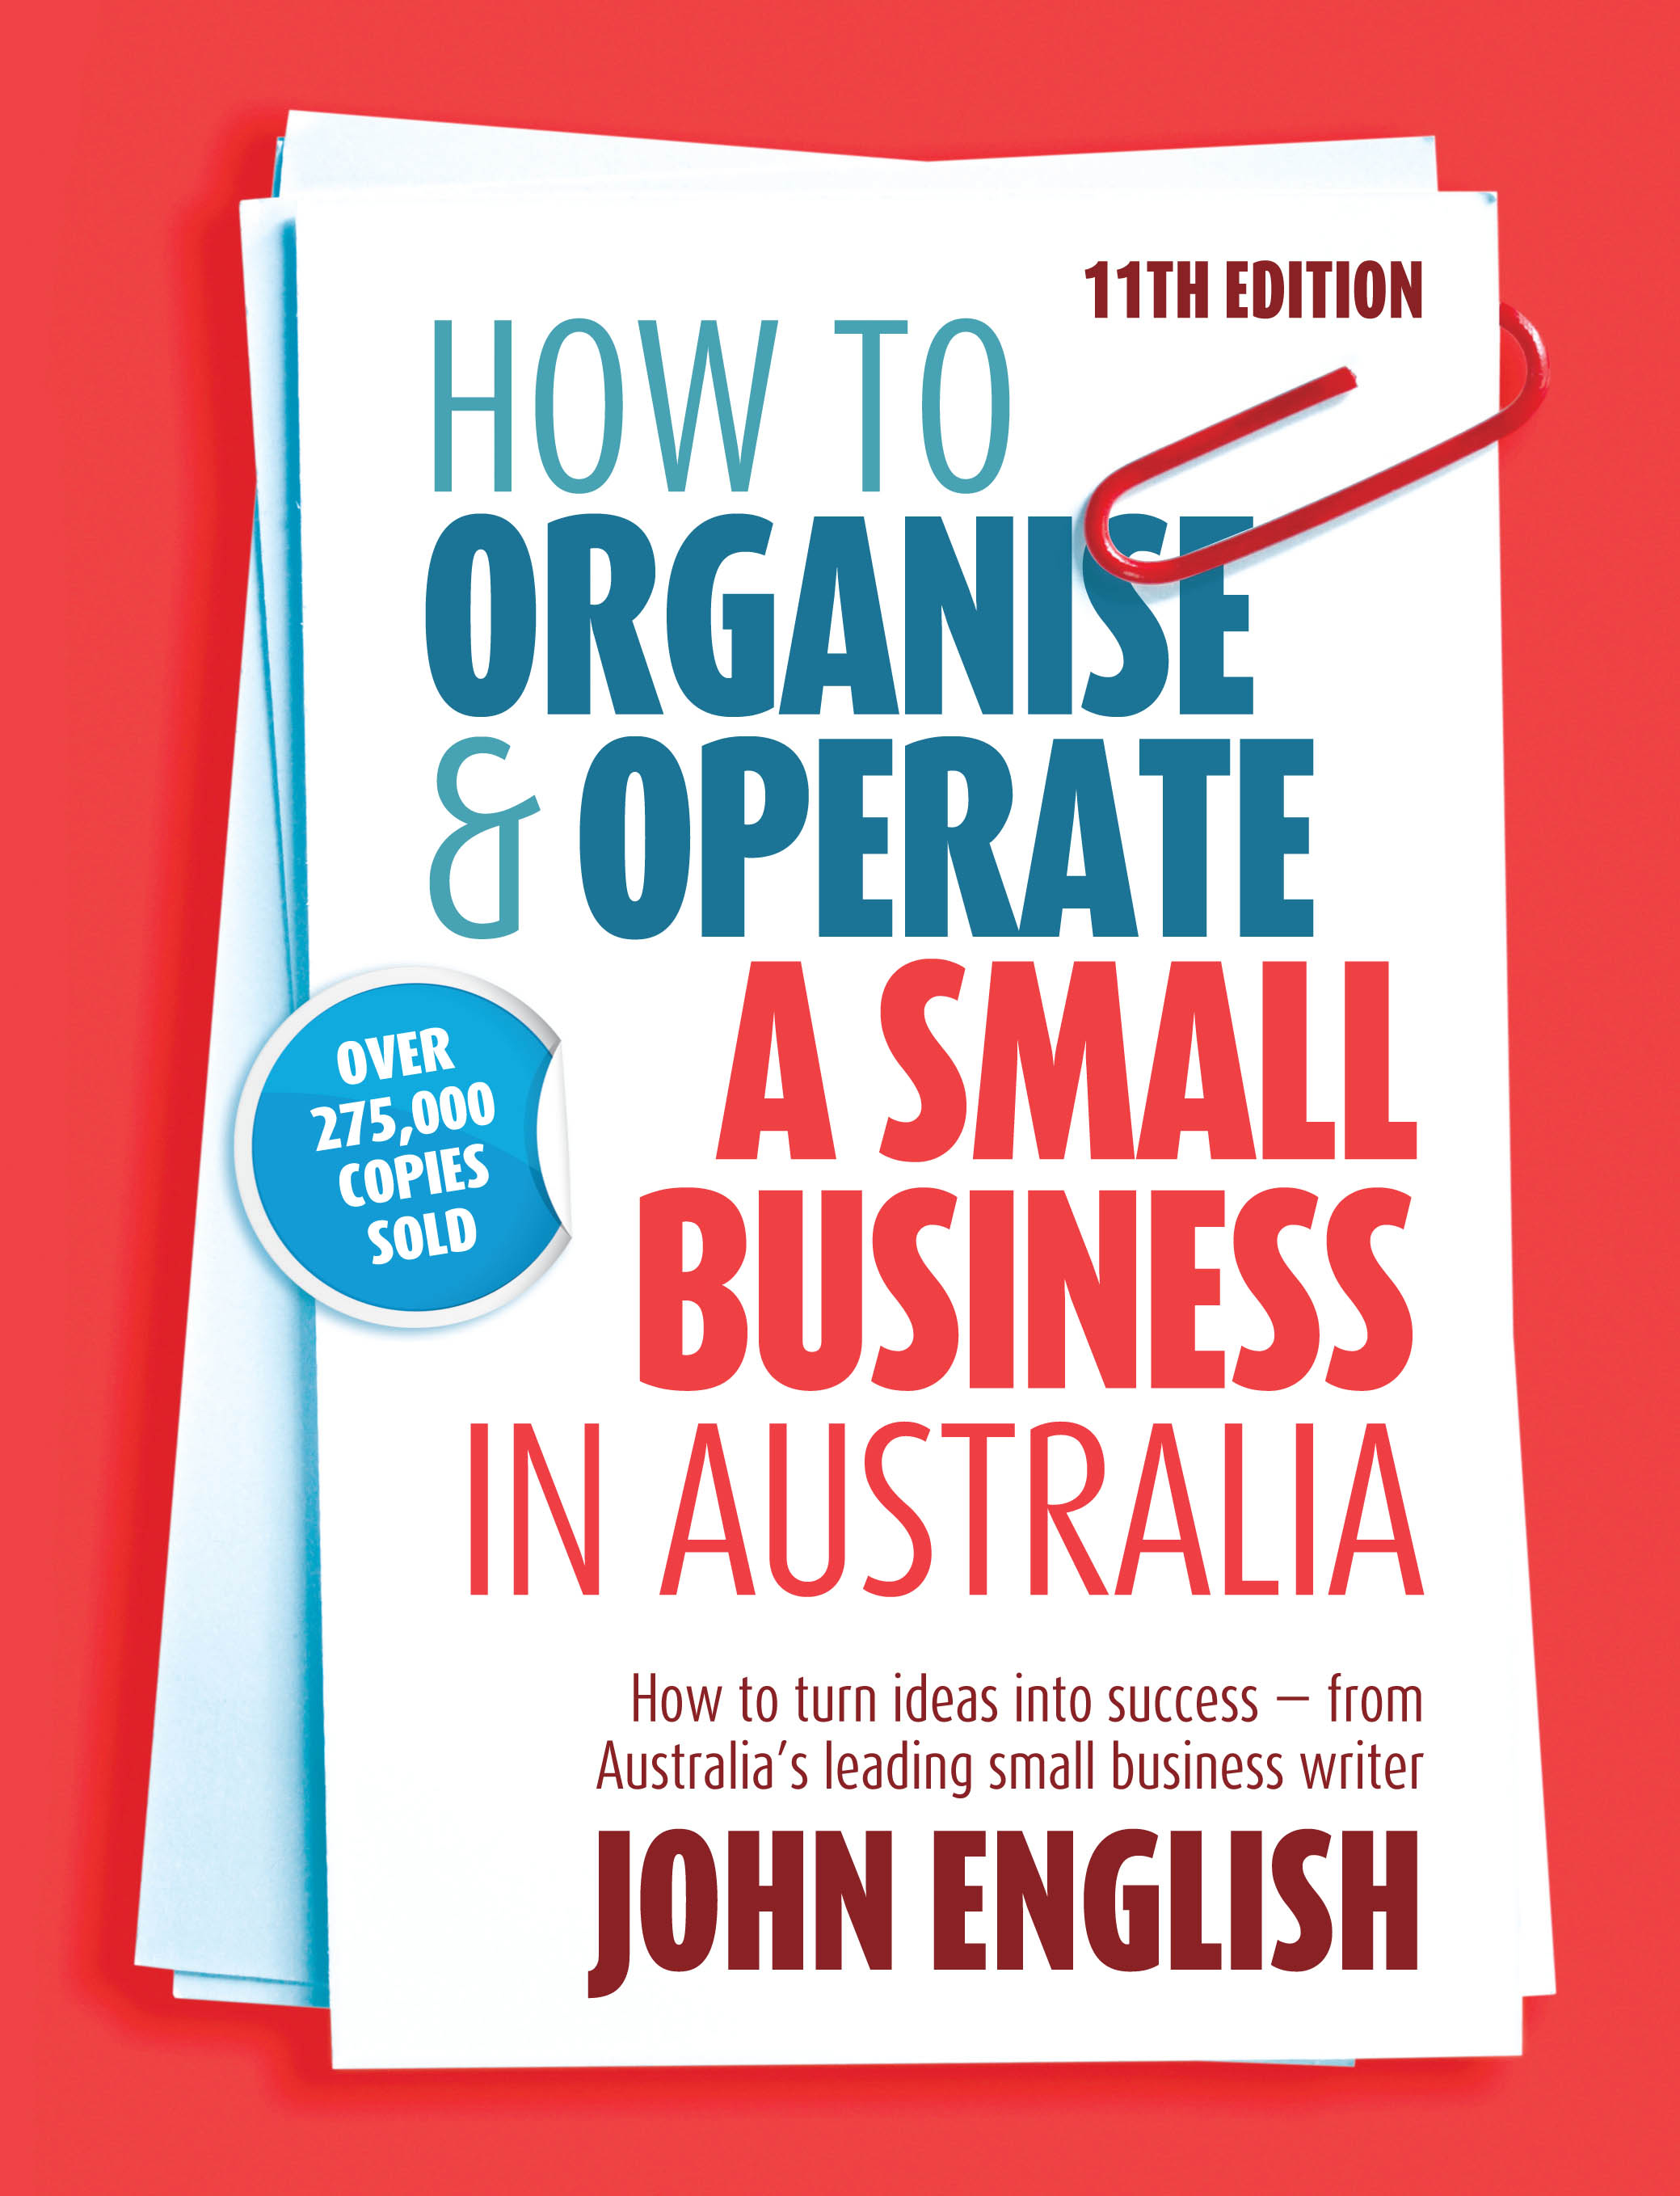 How To Organise & Operate A Small Business In Australia